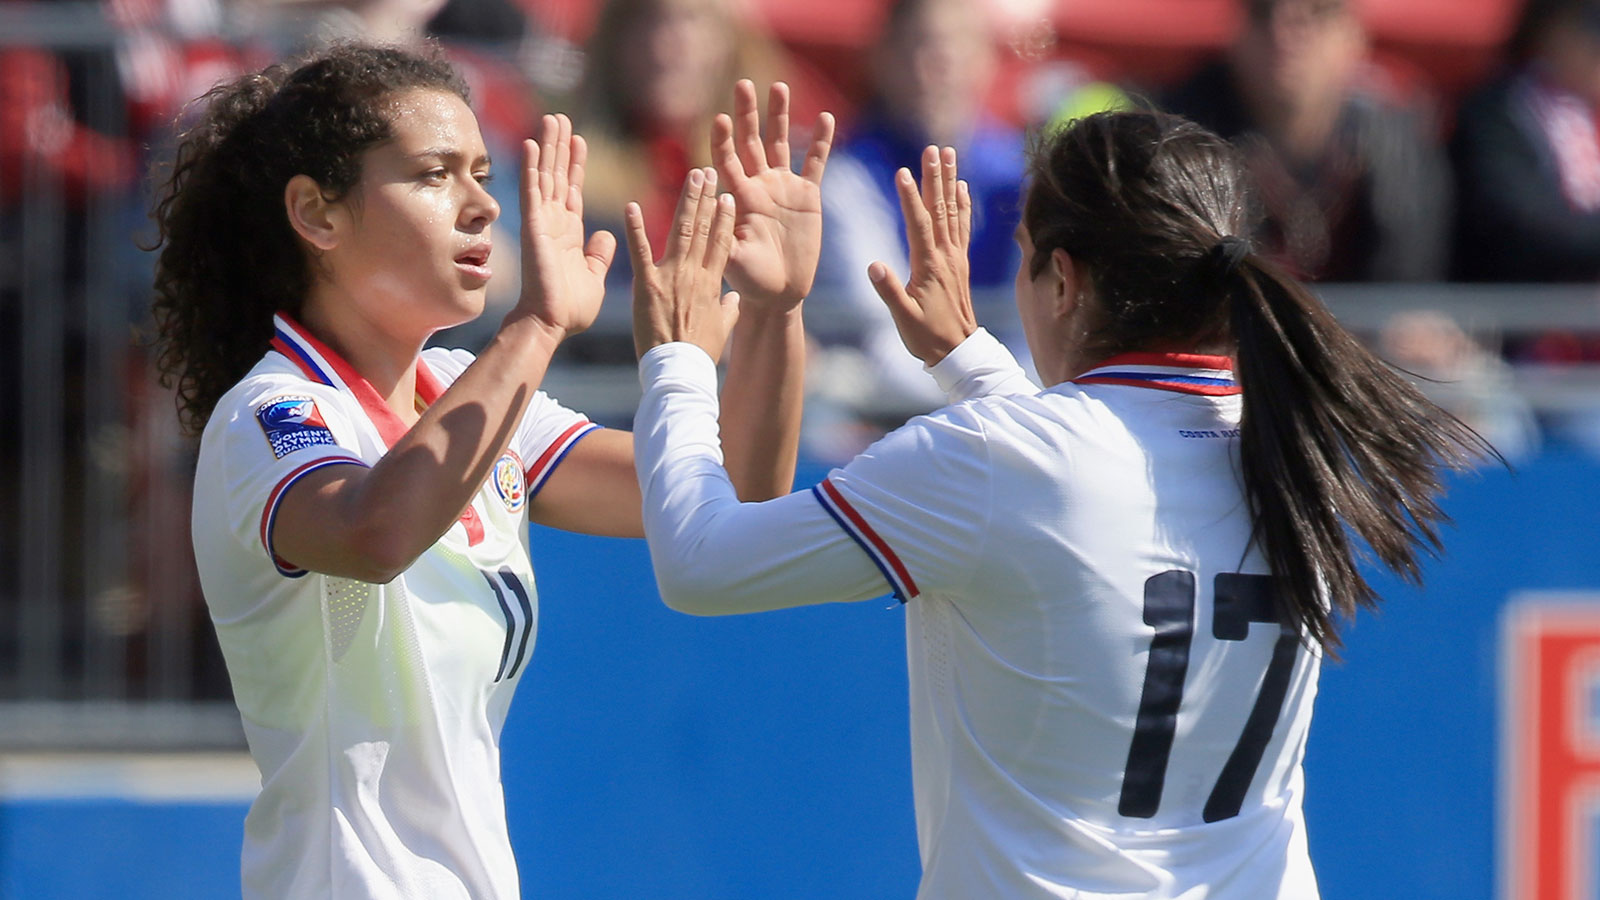 Raquel Rodriguez and Karla Villalobos each had a hat trick for Costa Rica. (Getty Images)